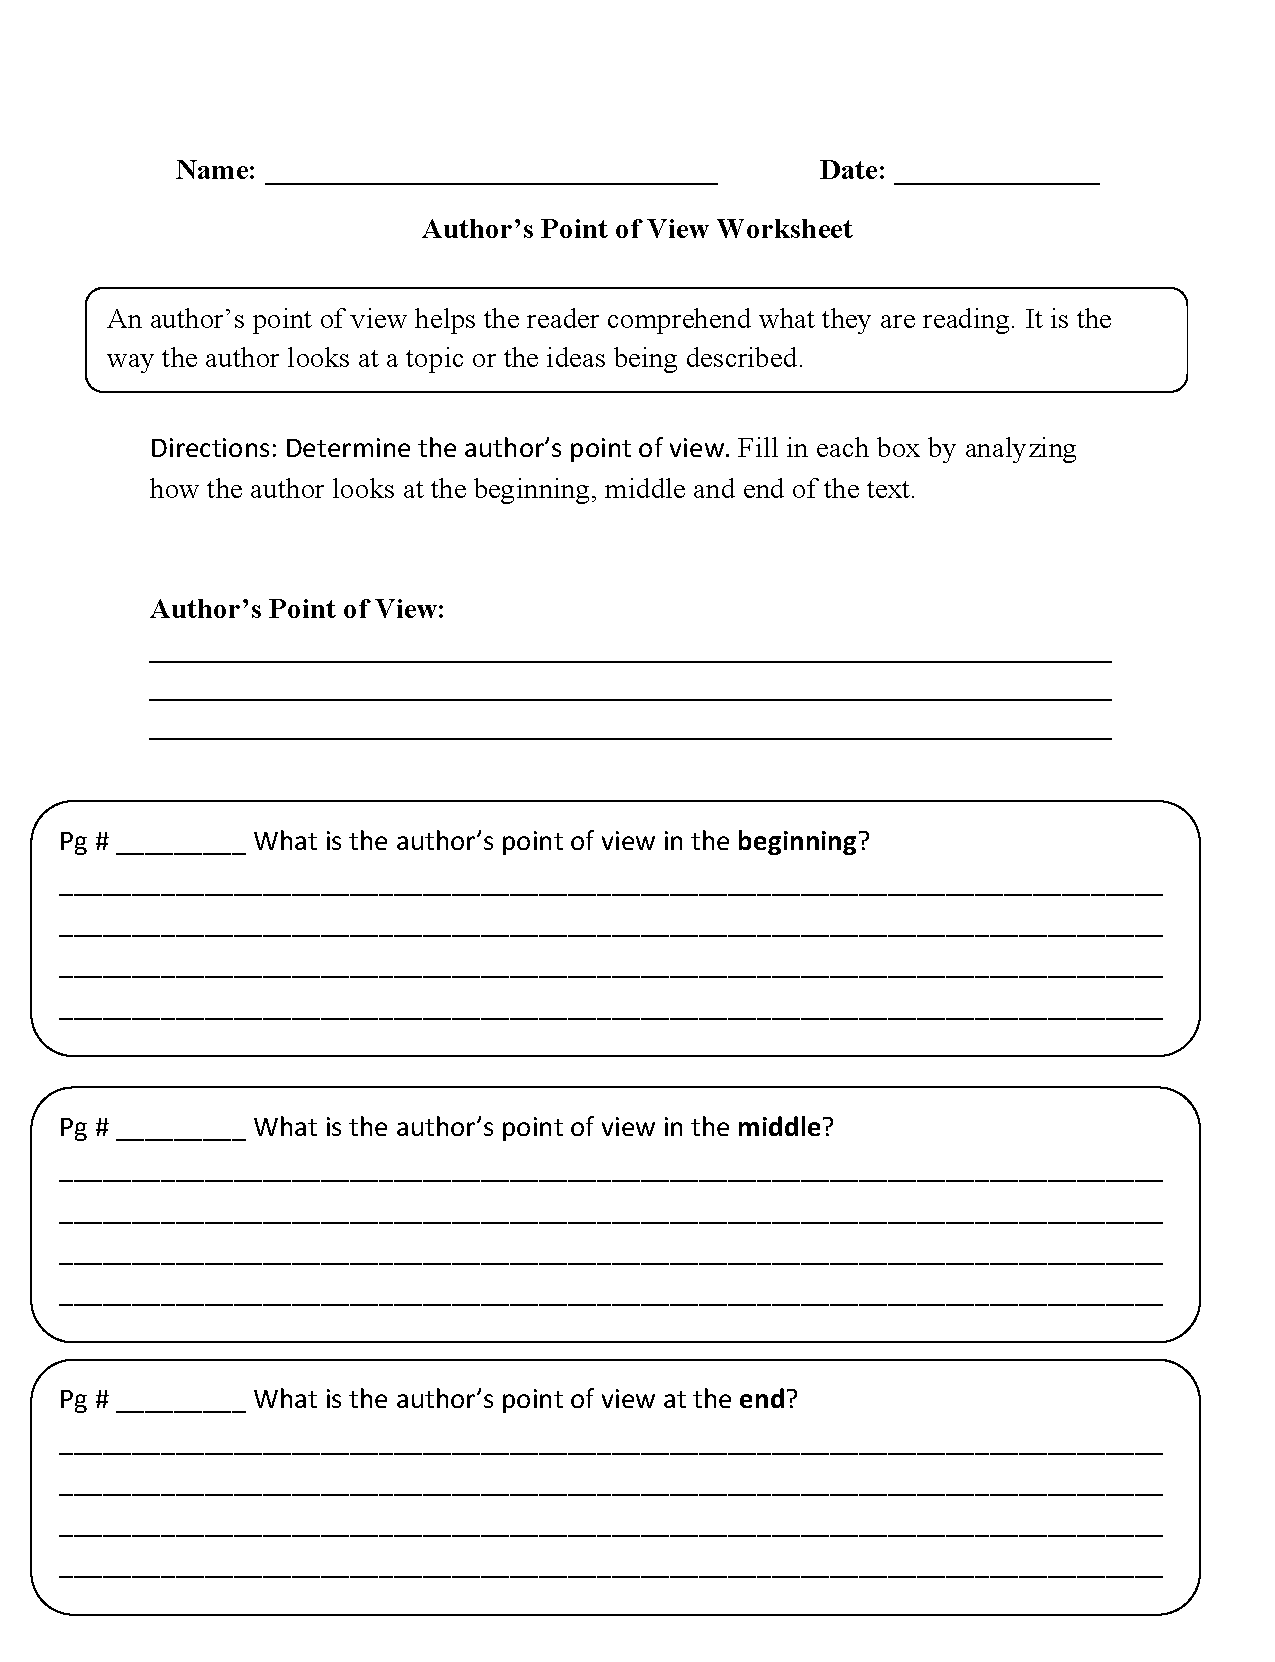 Weirdmailus  Unique Englishlinxcom  Point Of View Worksheets With Interesting Point Of View Worksheets With Awesome Virus Worksheet Also Double Negative Worksheets In Addition Kindergarten Pattern Worksheets And Computer Worksheets As Well As Learning Worksheets Additionally Than Vs Then Worksheet From Englishlinxcom With Weirdmailus  Interesting Englishlinxcom  Point Of View Worksheets With Awesome Point Of View Worksheets And Unique Virus Worksheet Also Double Negative Worksheets In Addition Kindergarten Pattern Worksheets From Englishlinxcom